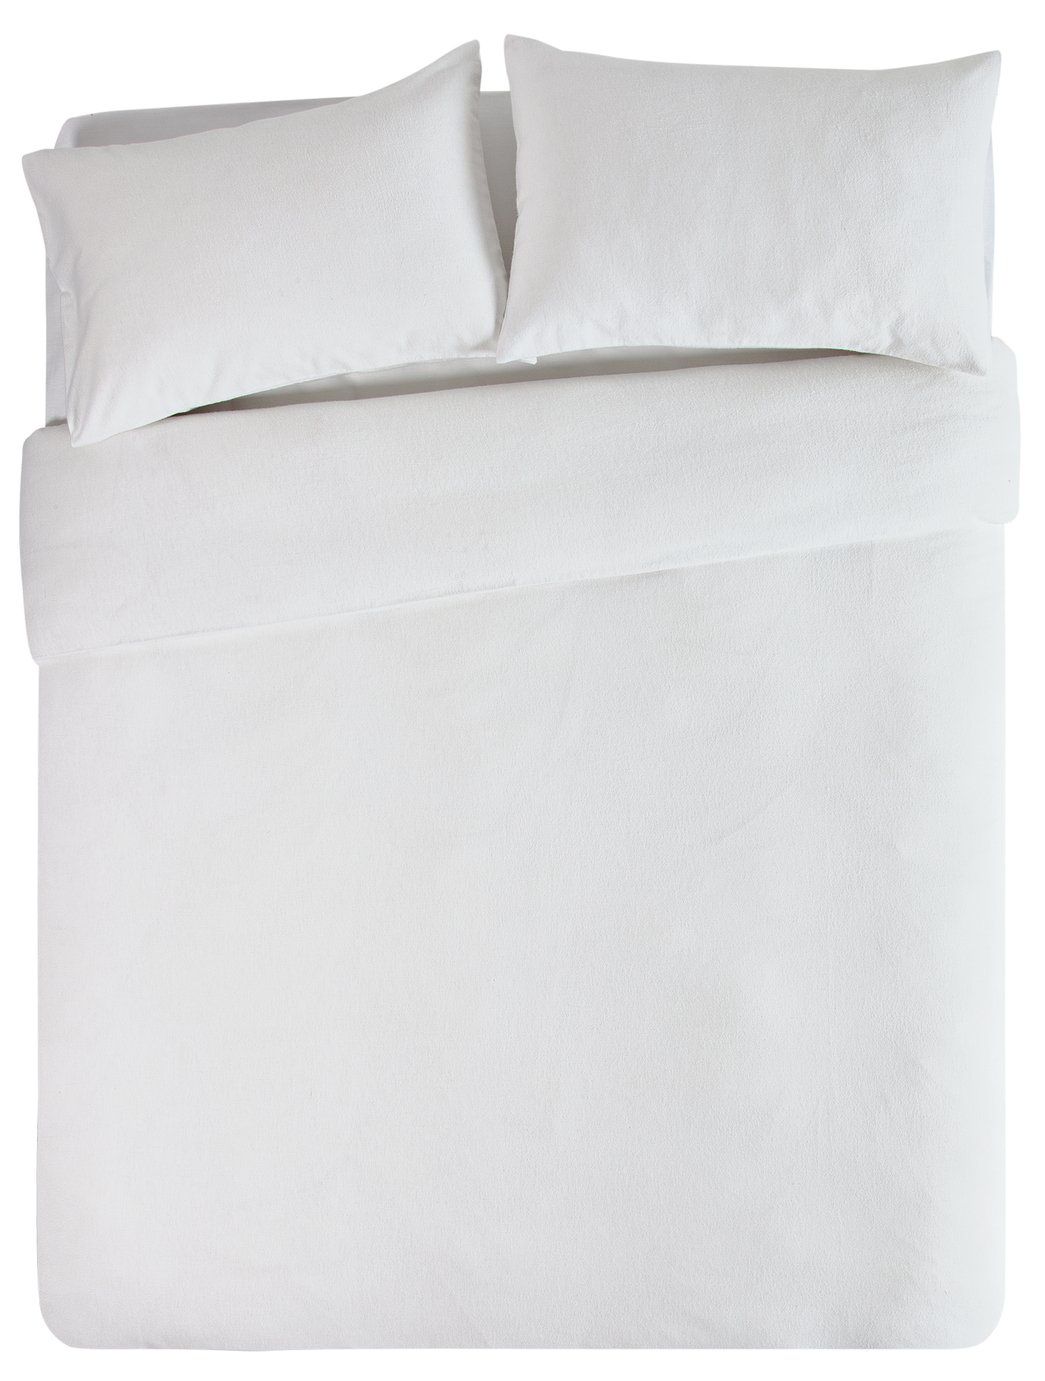 Collection - White Brushed Cotton - Bedding Set - Double